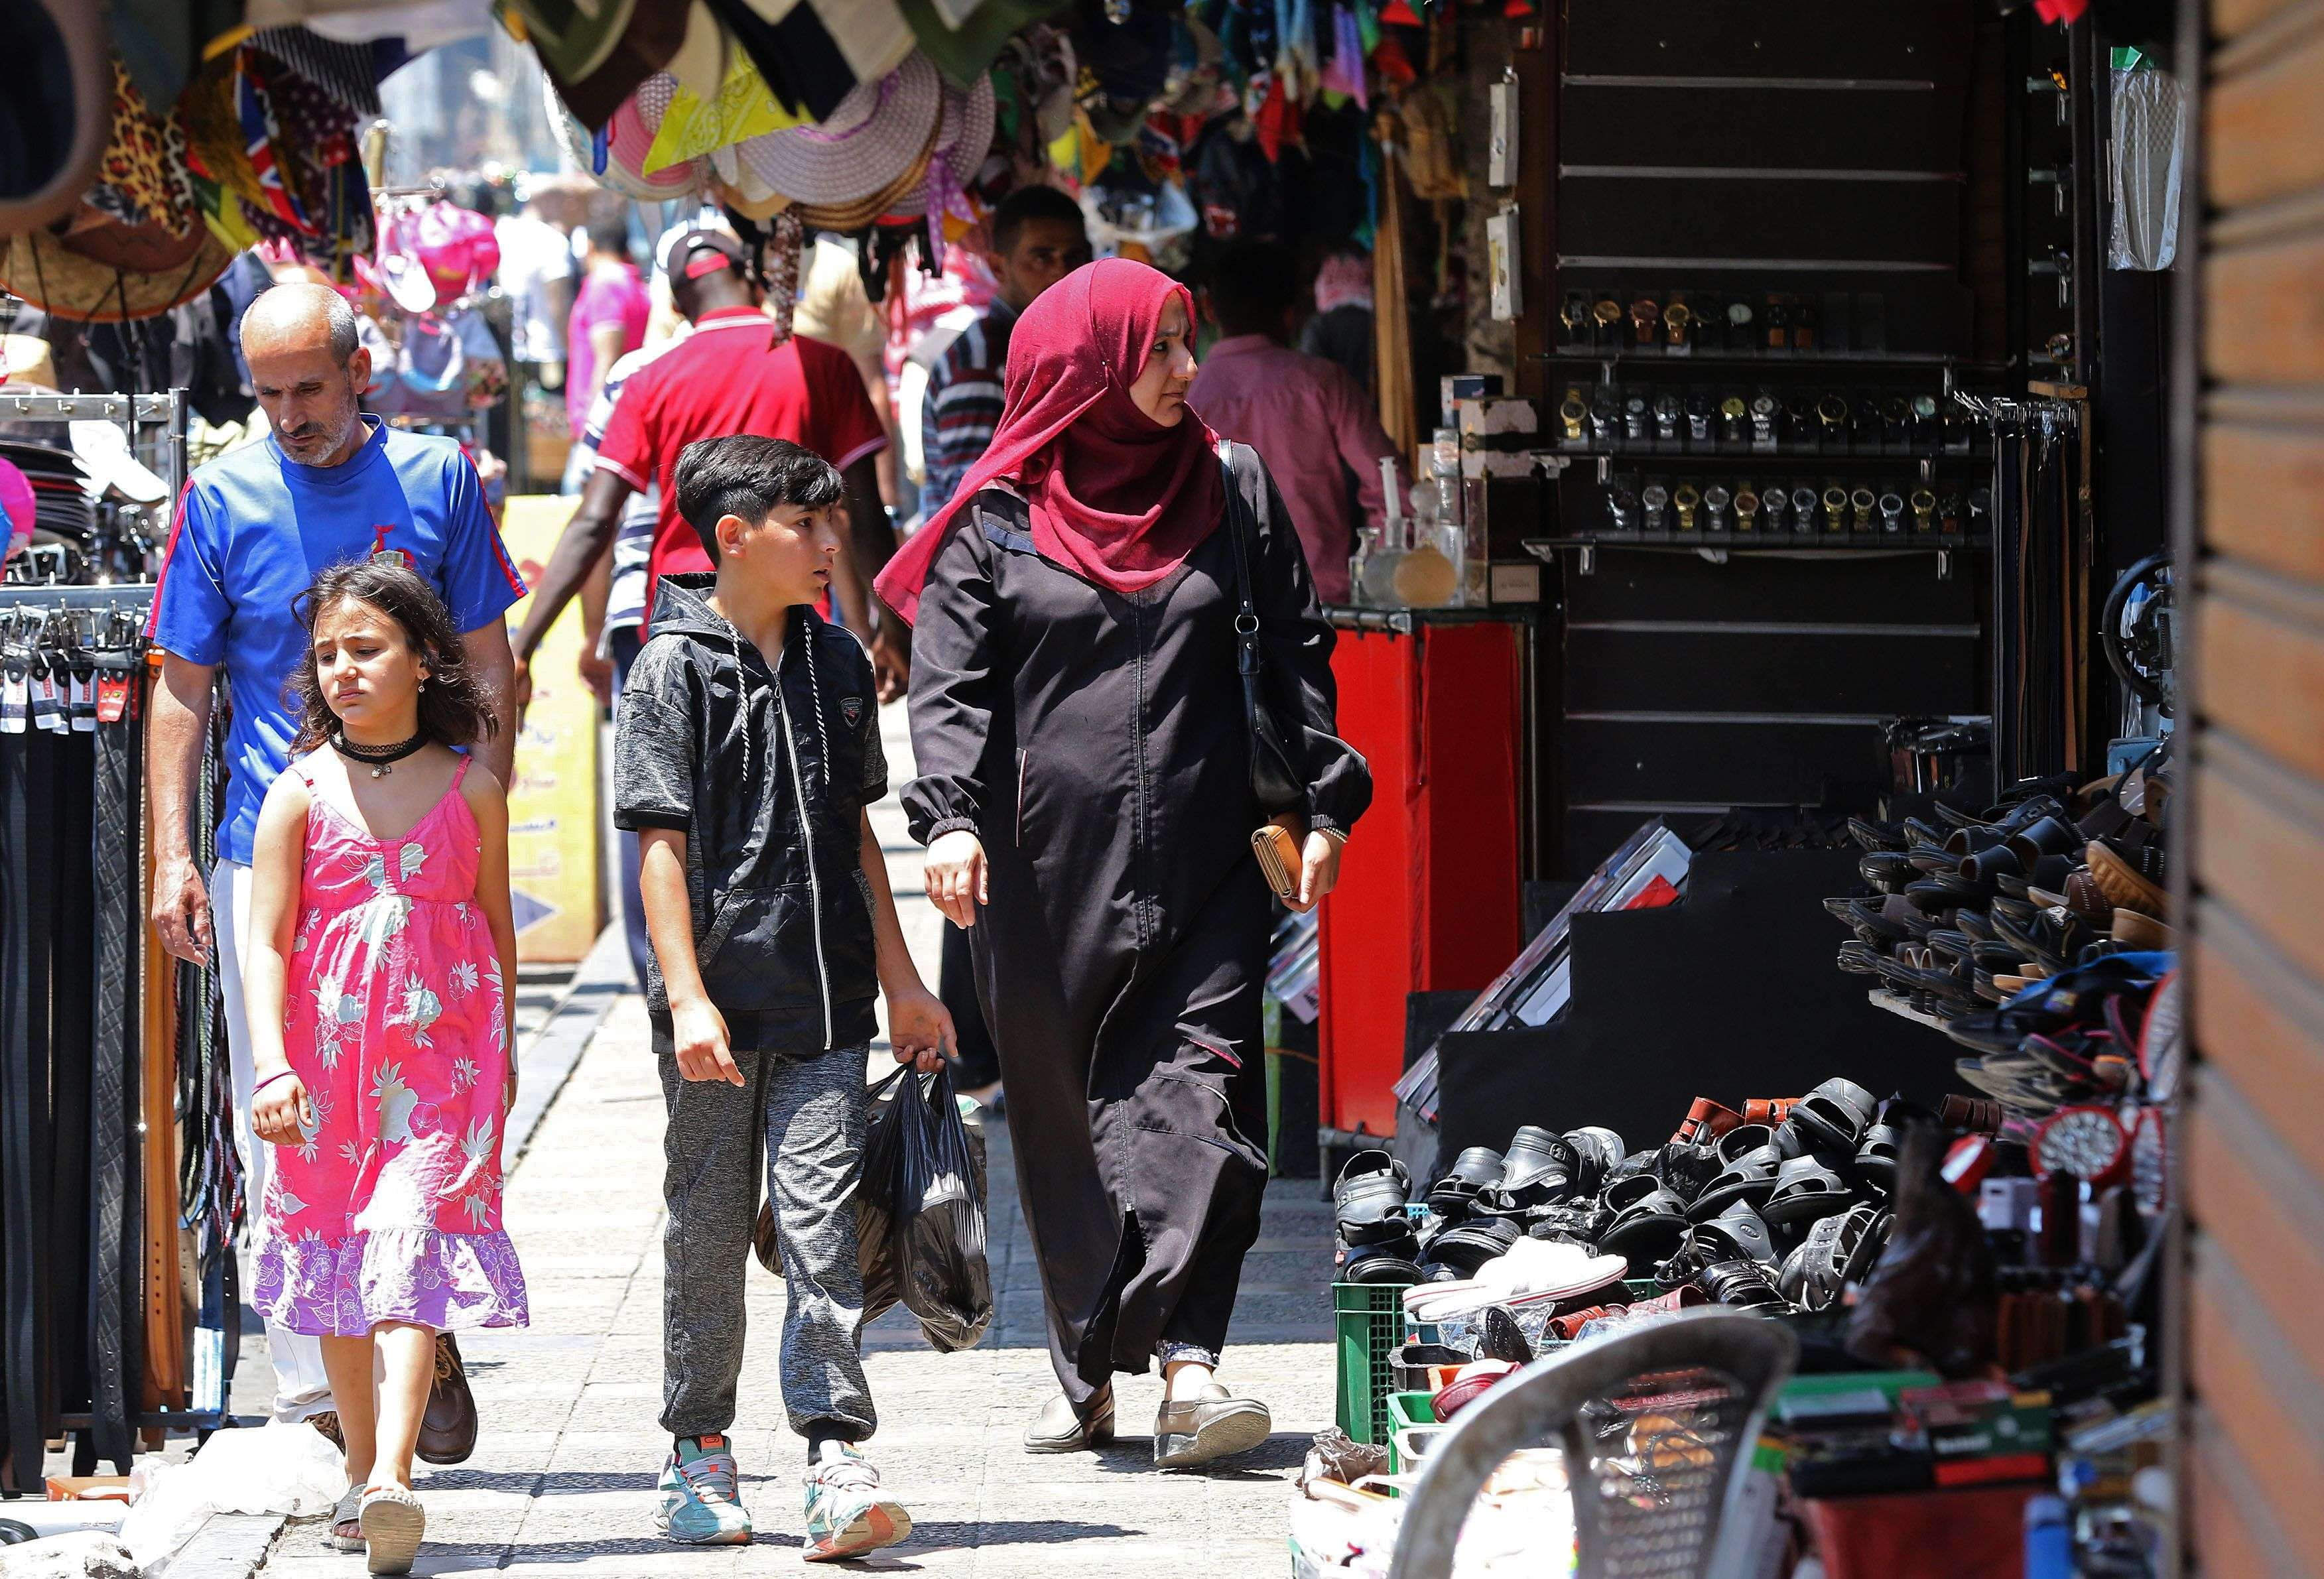 Hoping for better days. People stroll in a traditional market in downtown Amman.(AFP)